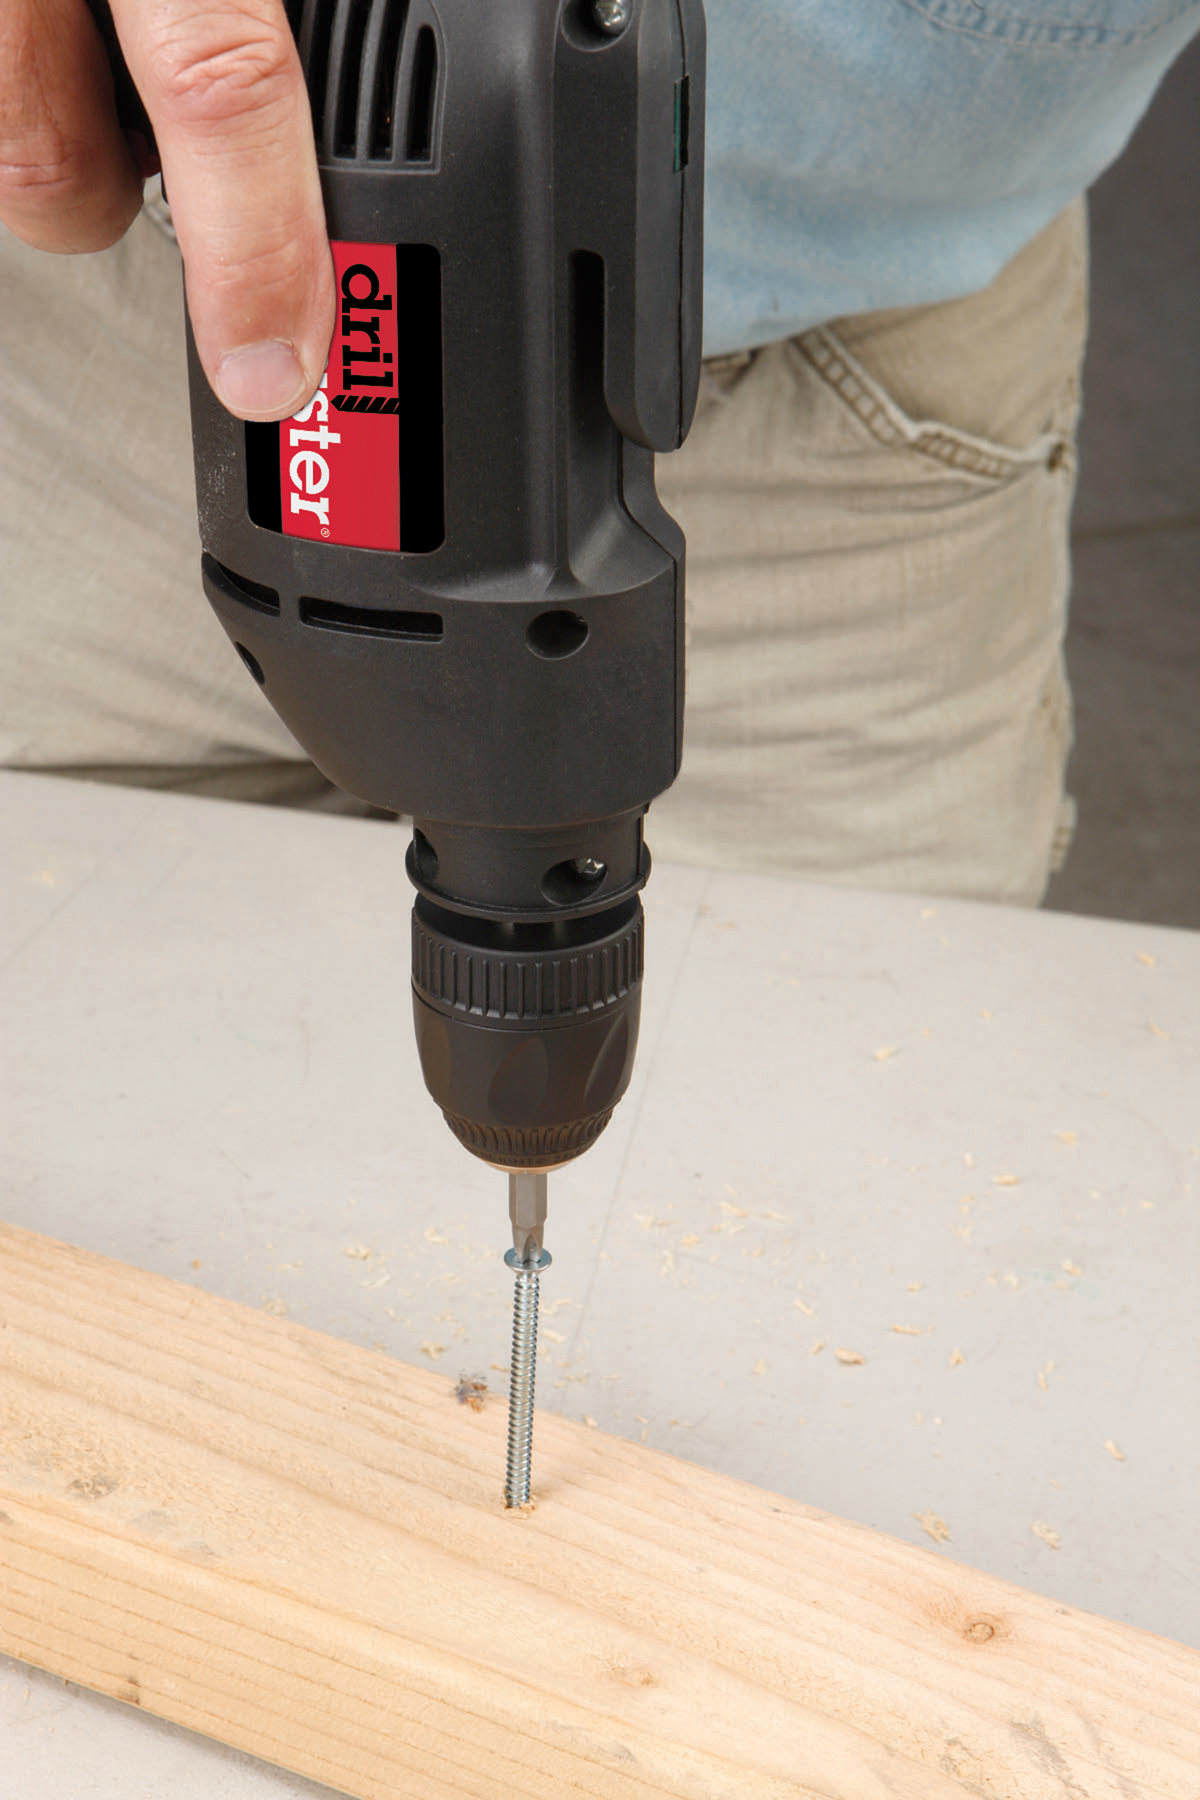 hight resolution of variable speed reversible drill